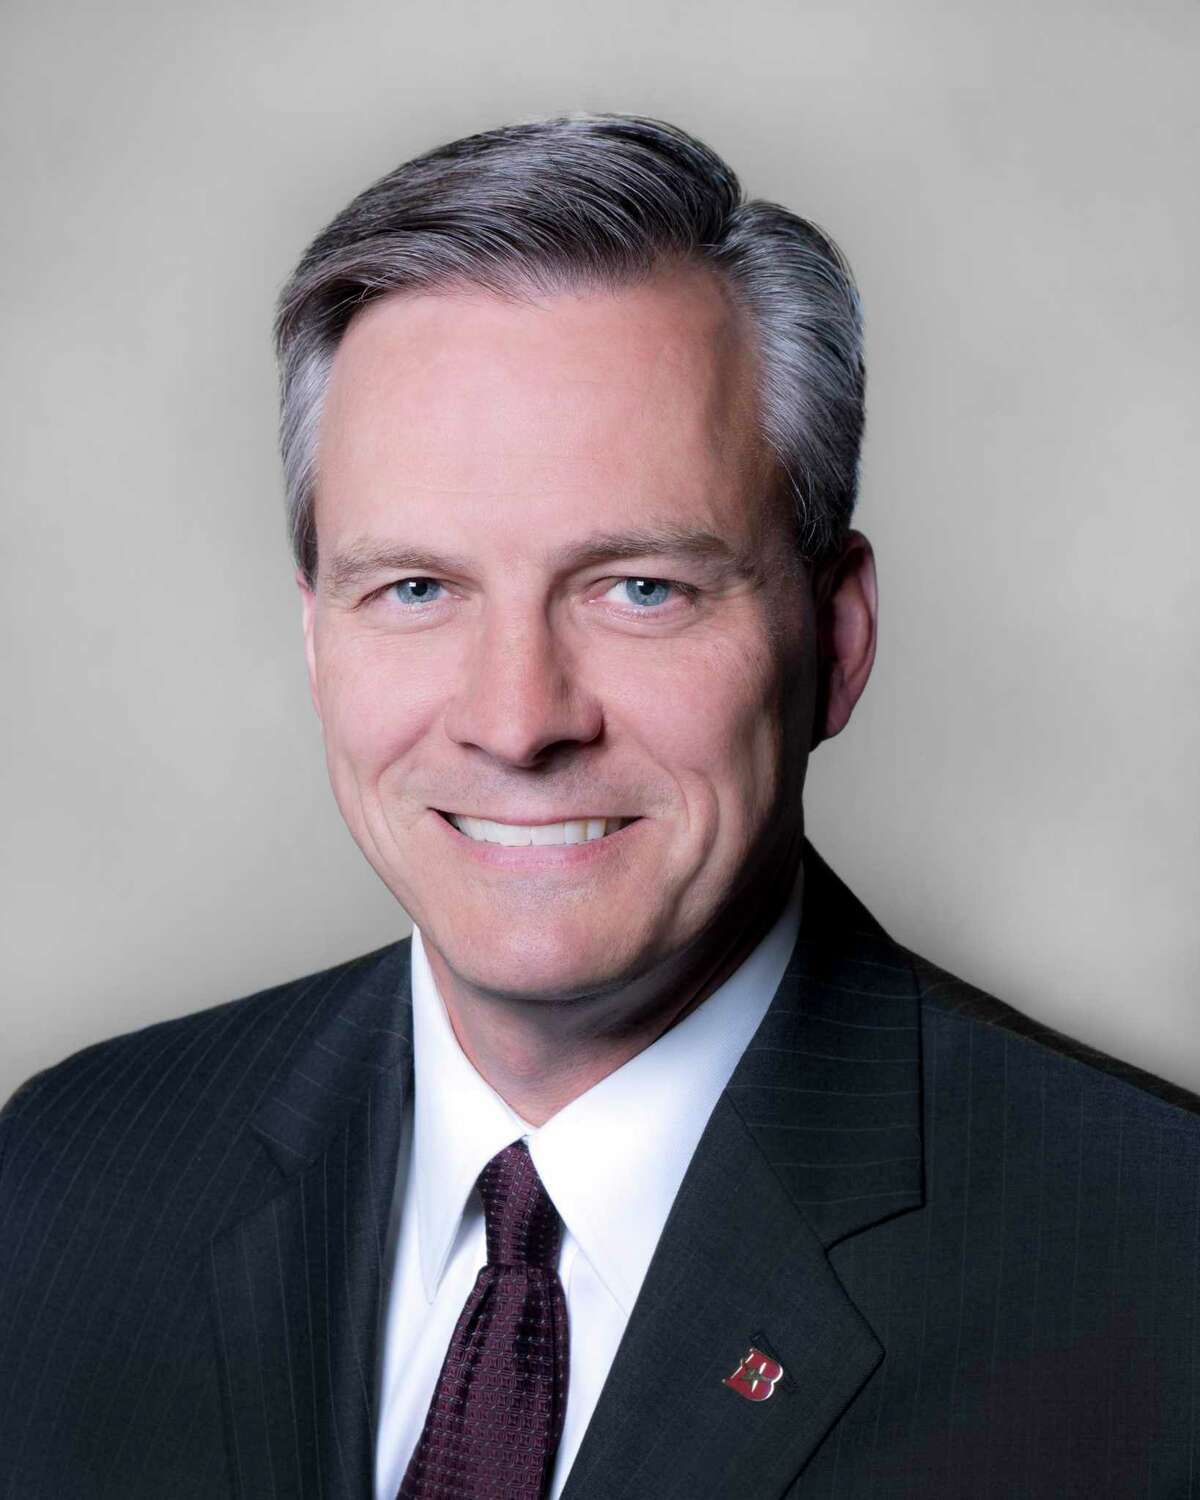 David Bohne is CEO of Broadway Bank, which reported net income of $52.6 million on $168.5 million in revenue last year. Both figures were records for the bank.